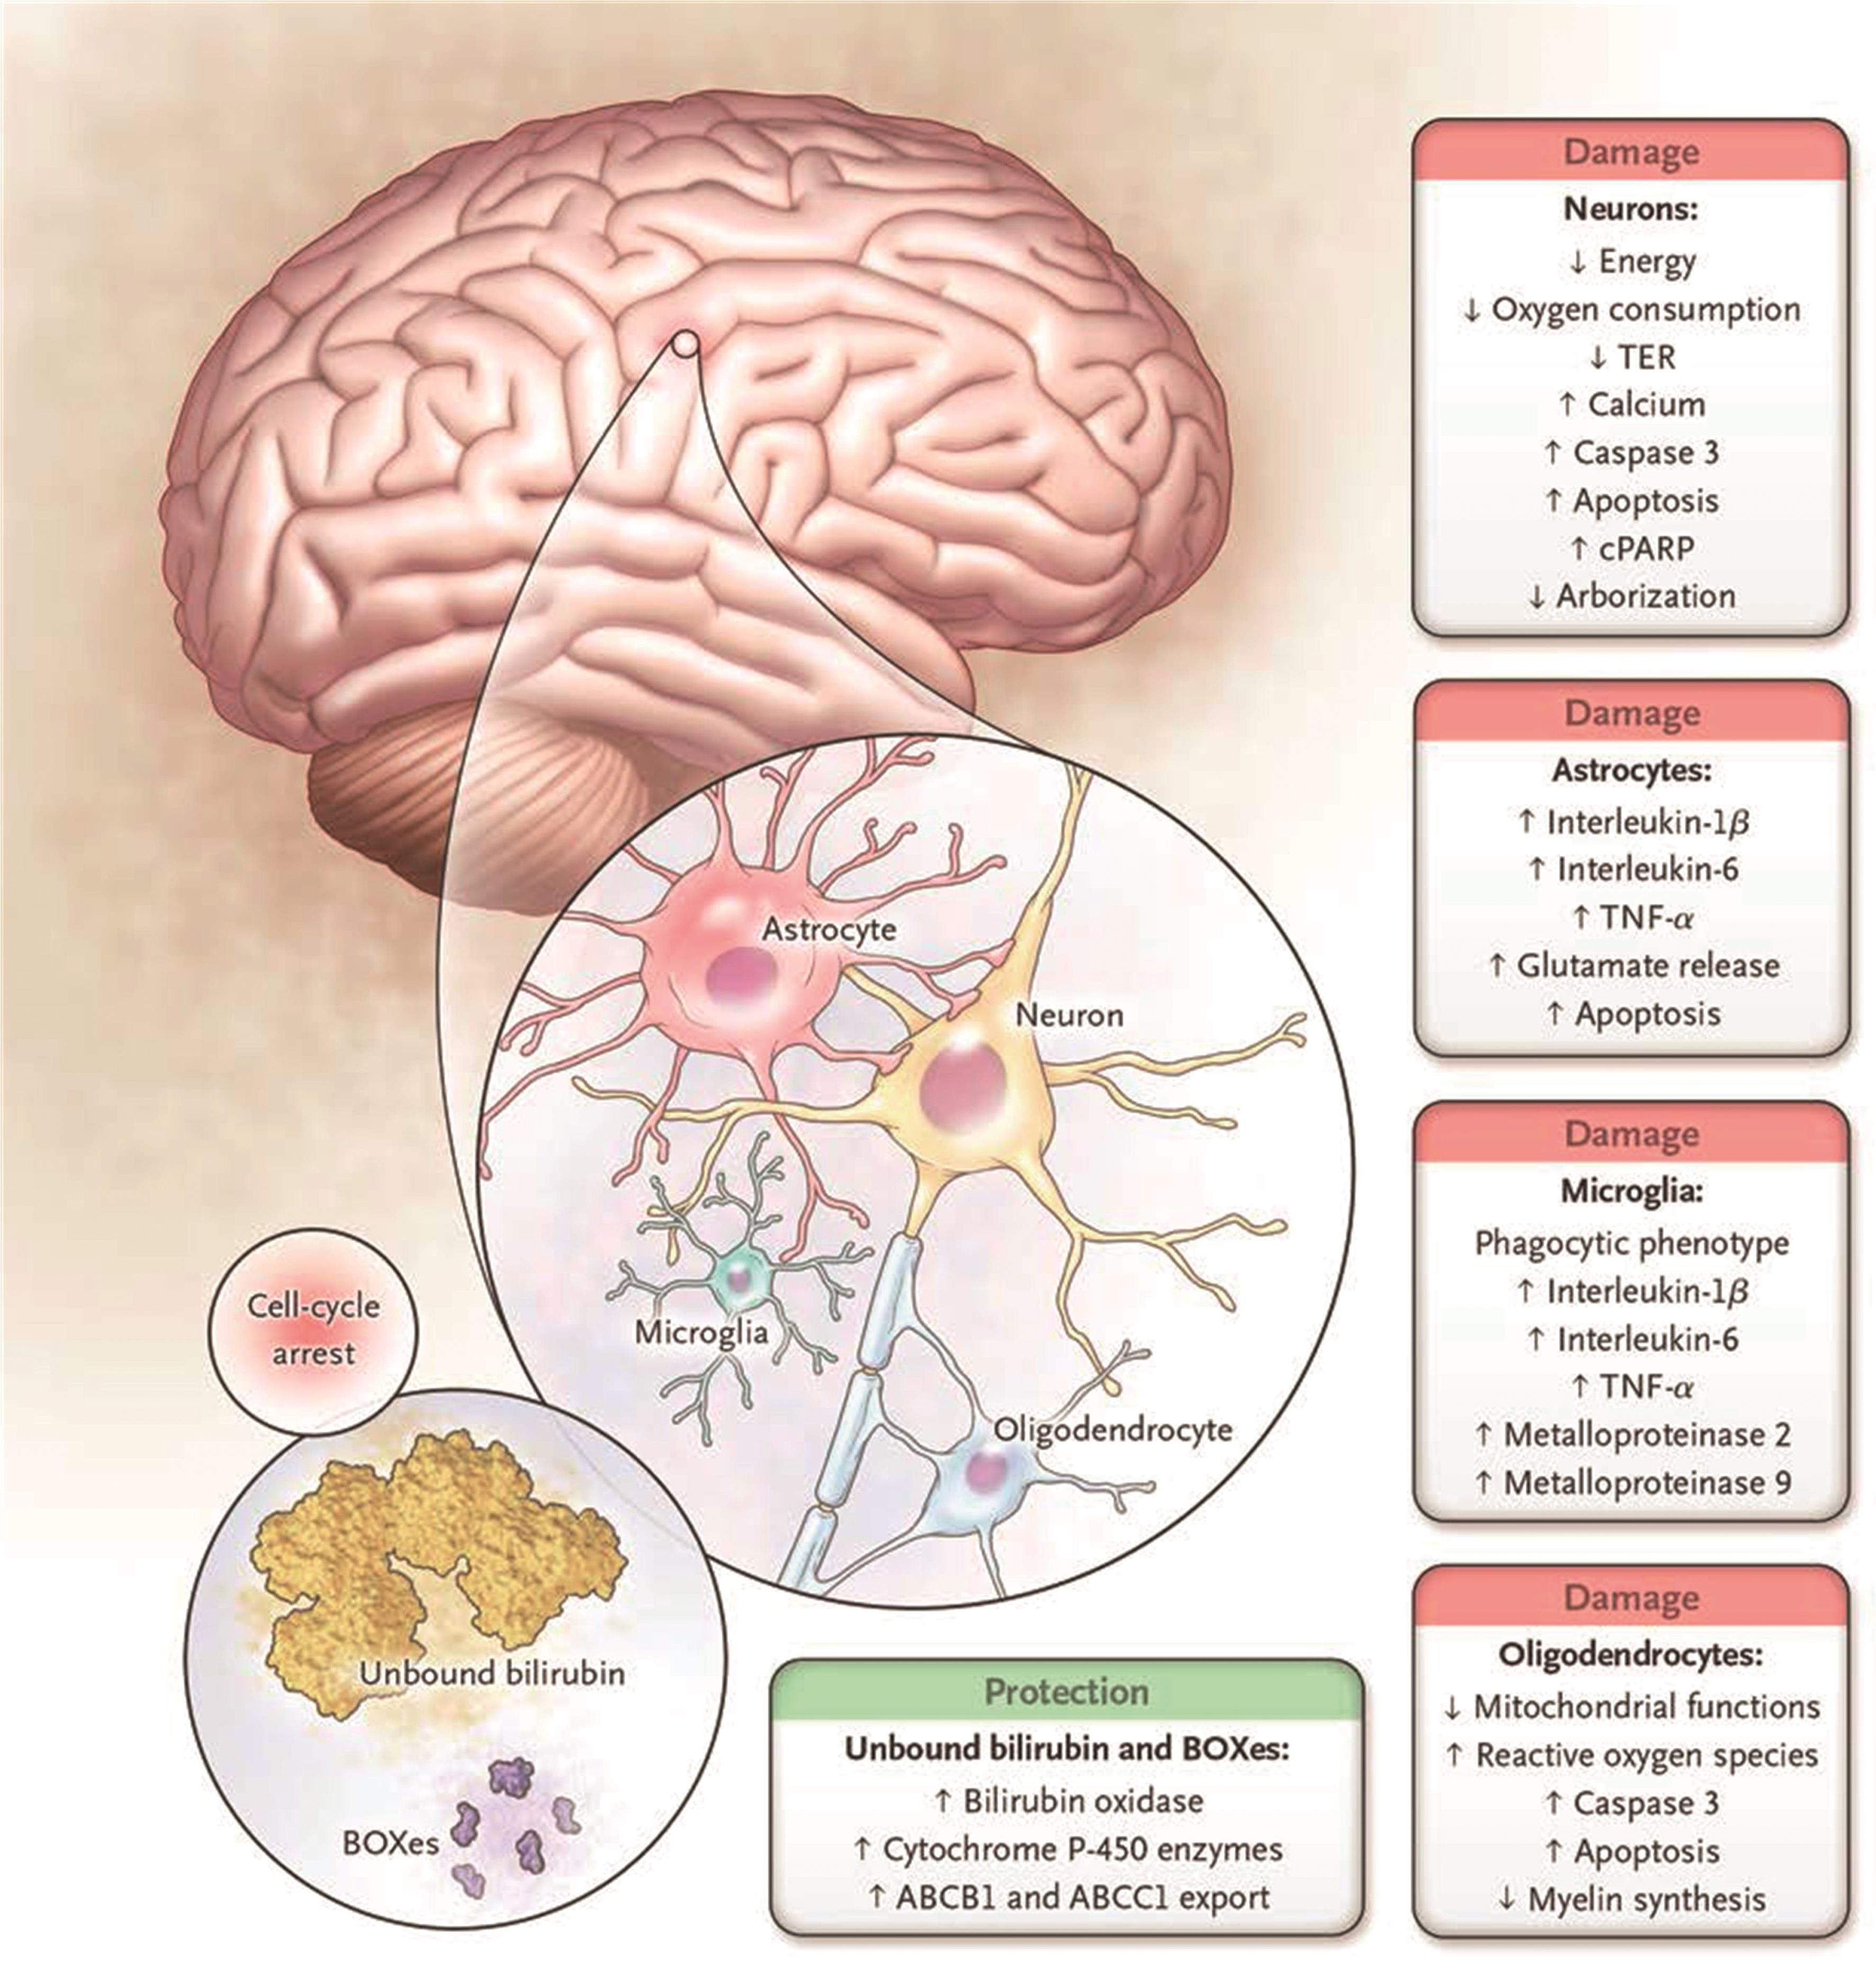 Cell types and metabolic processes affected by bilirubin in the central nervous system.